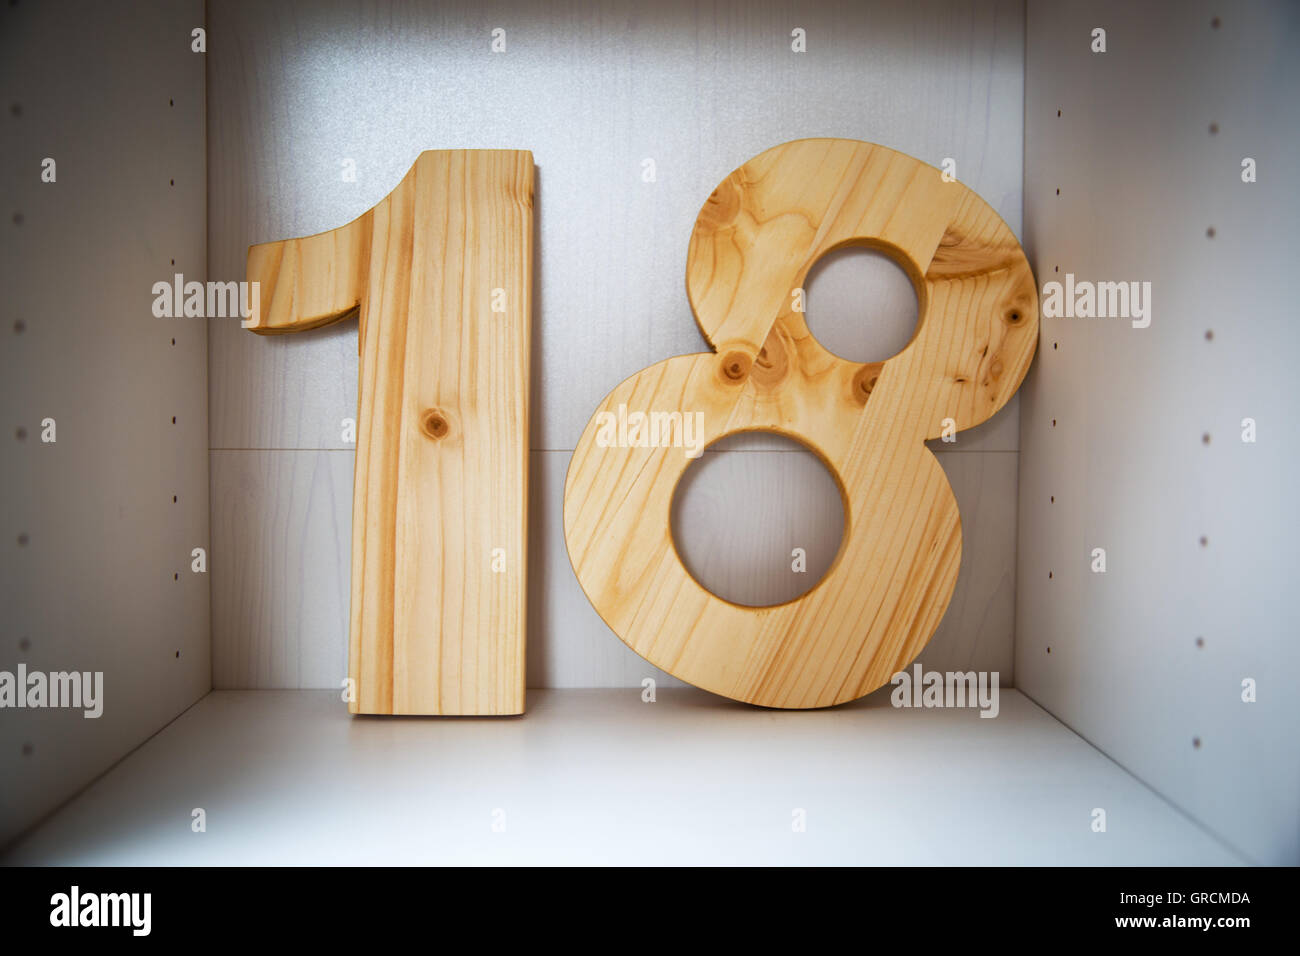 18, Number Of Wood - Stock Image